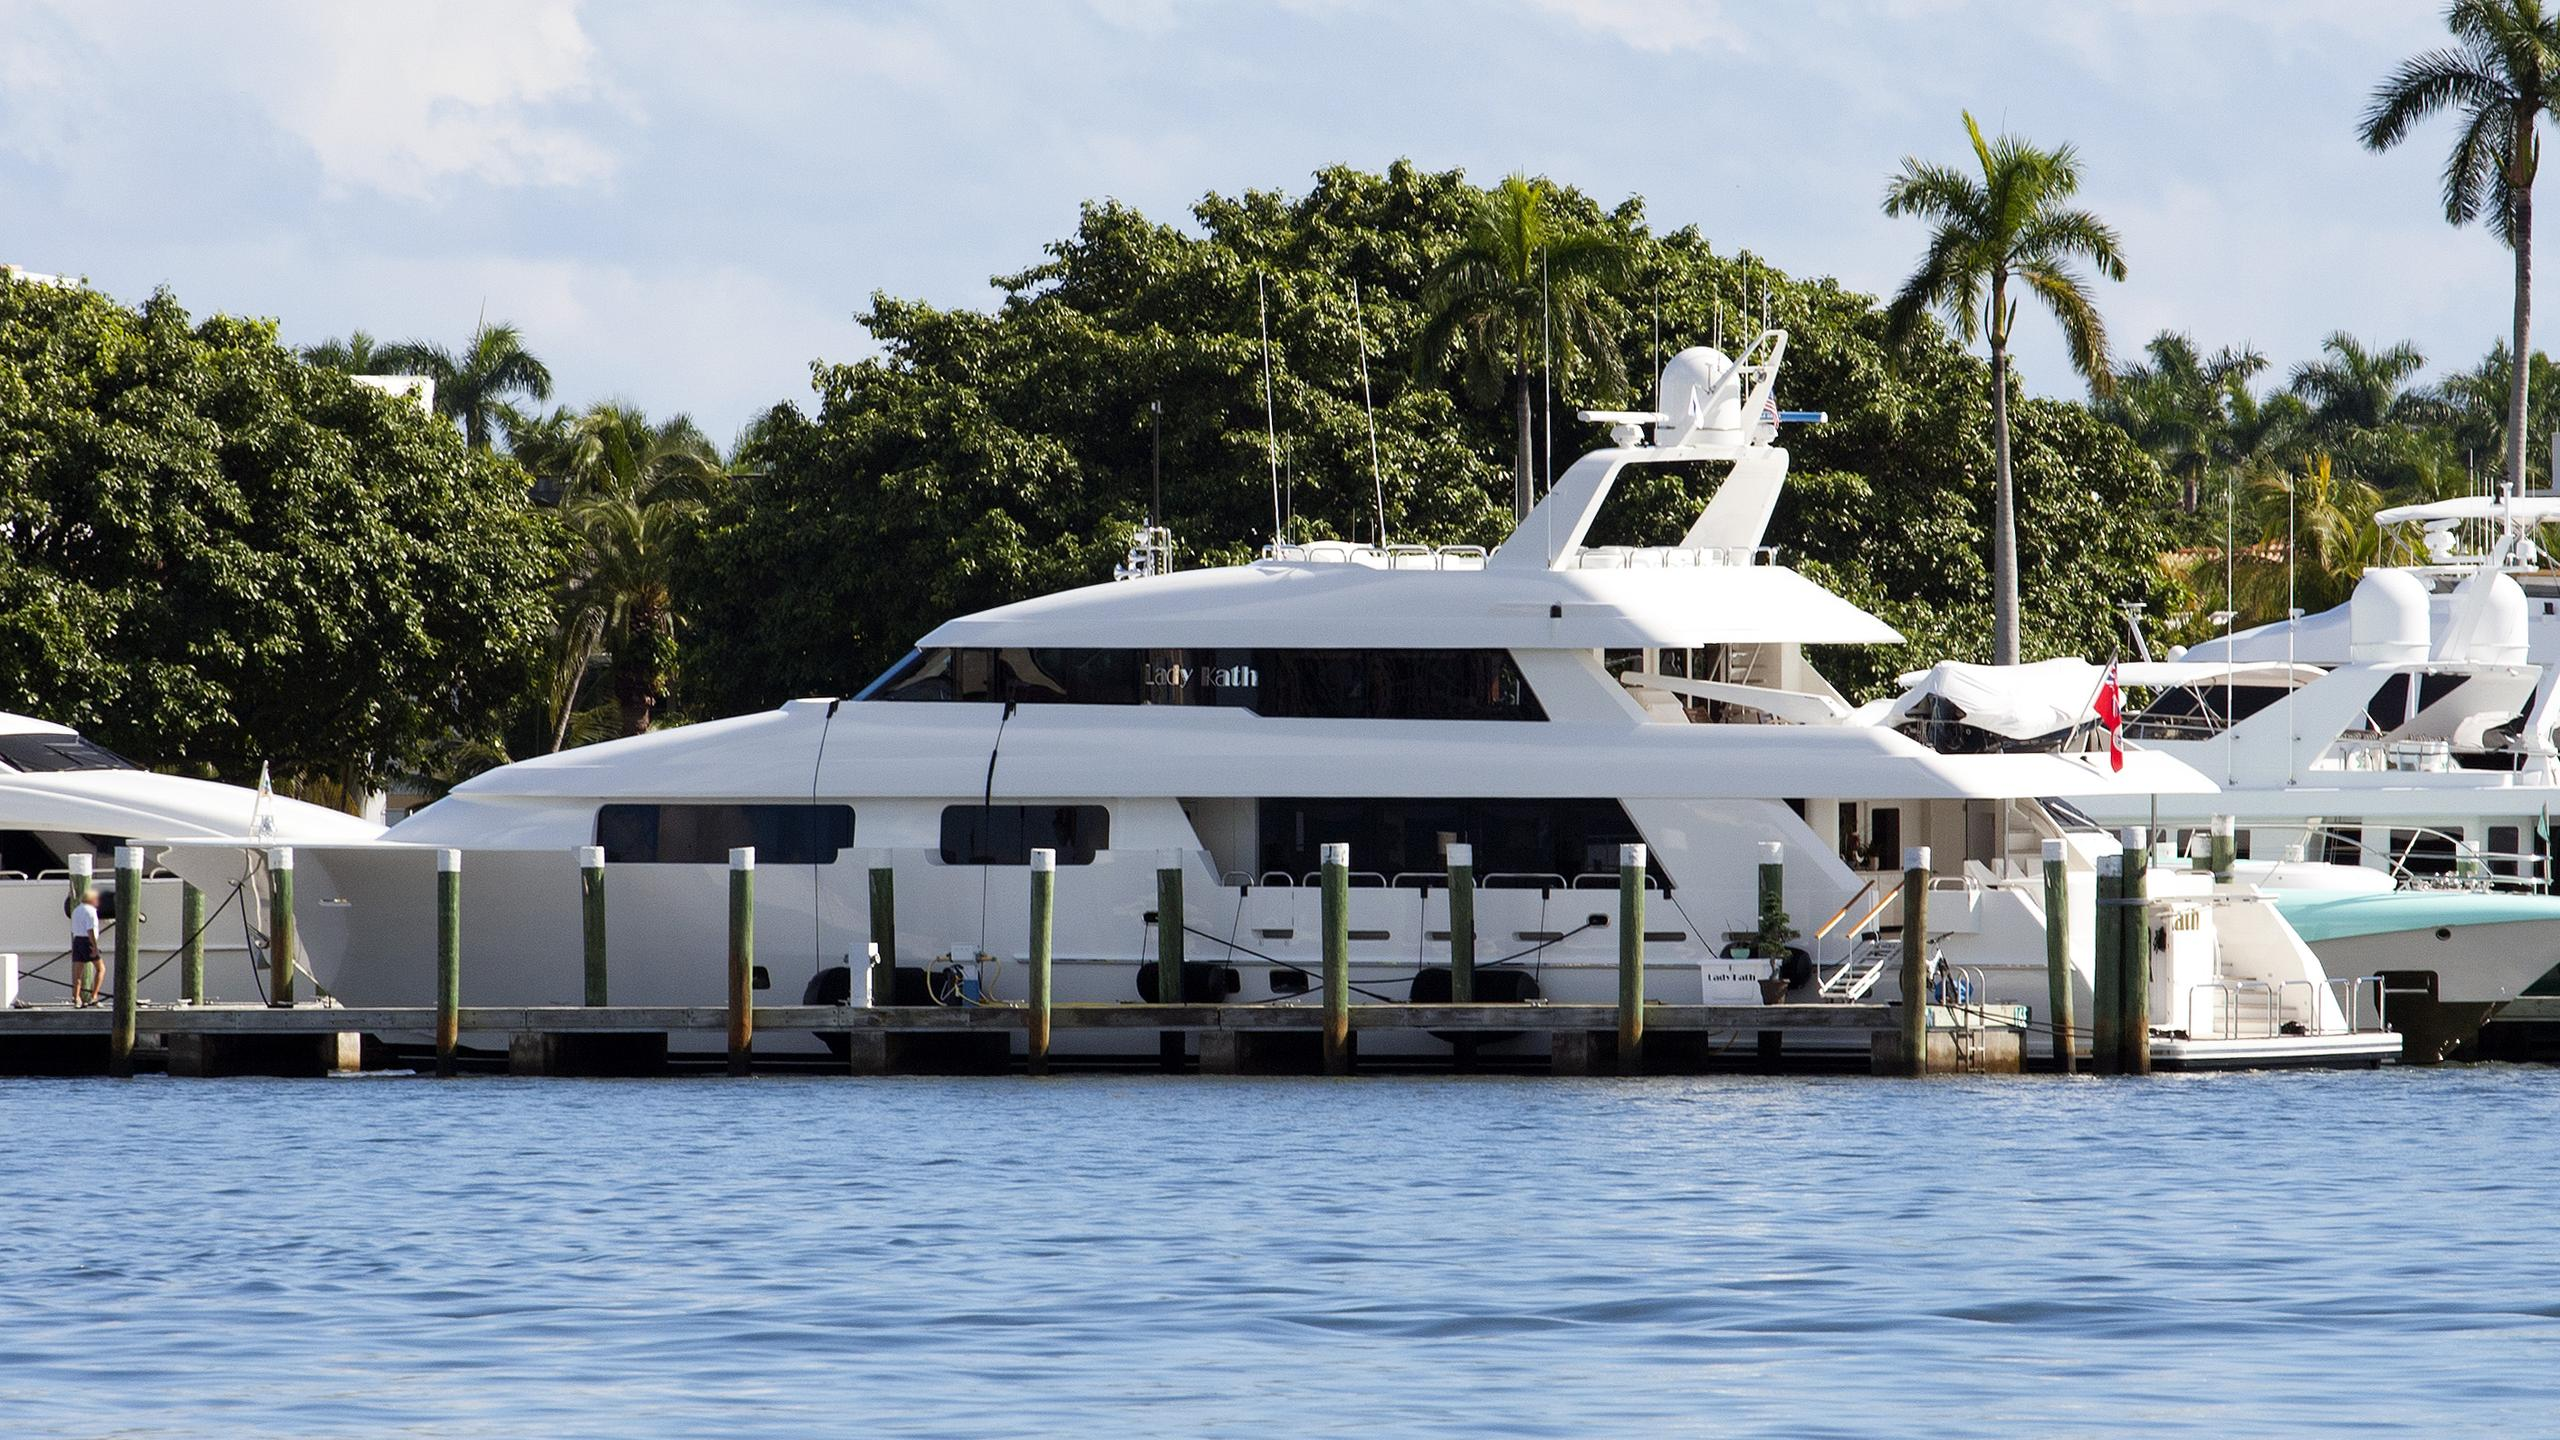 lady-kath-motor-yacht-northcoast-2002-39m-profile